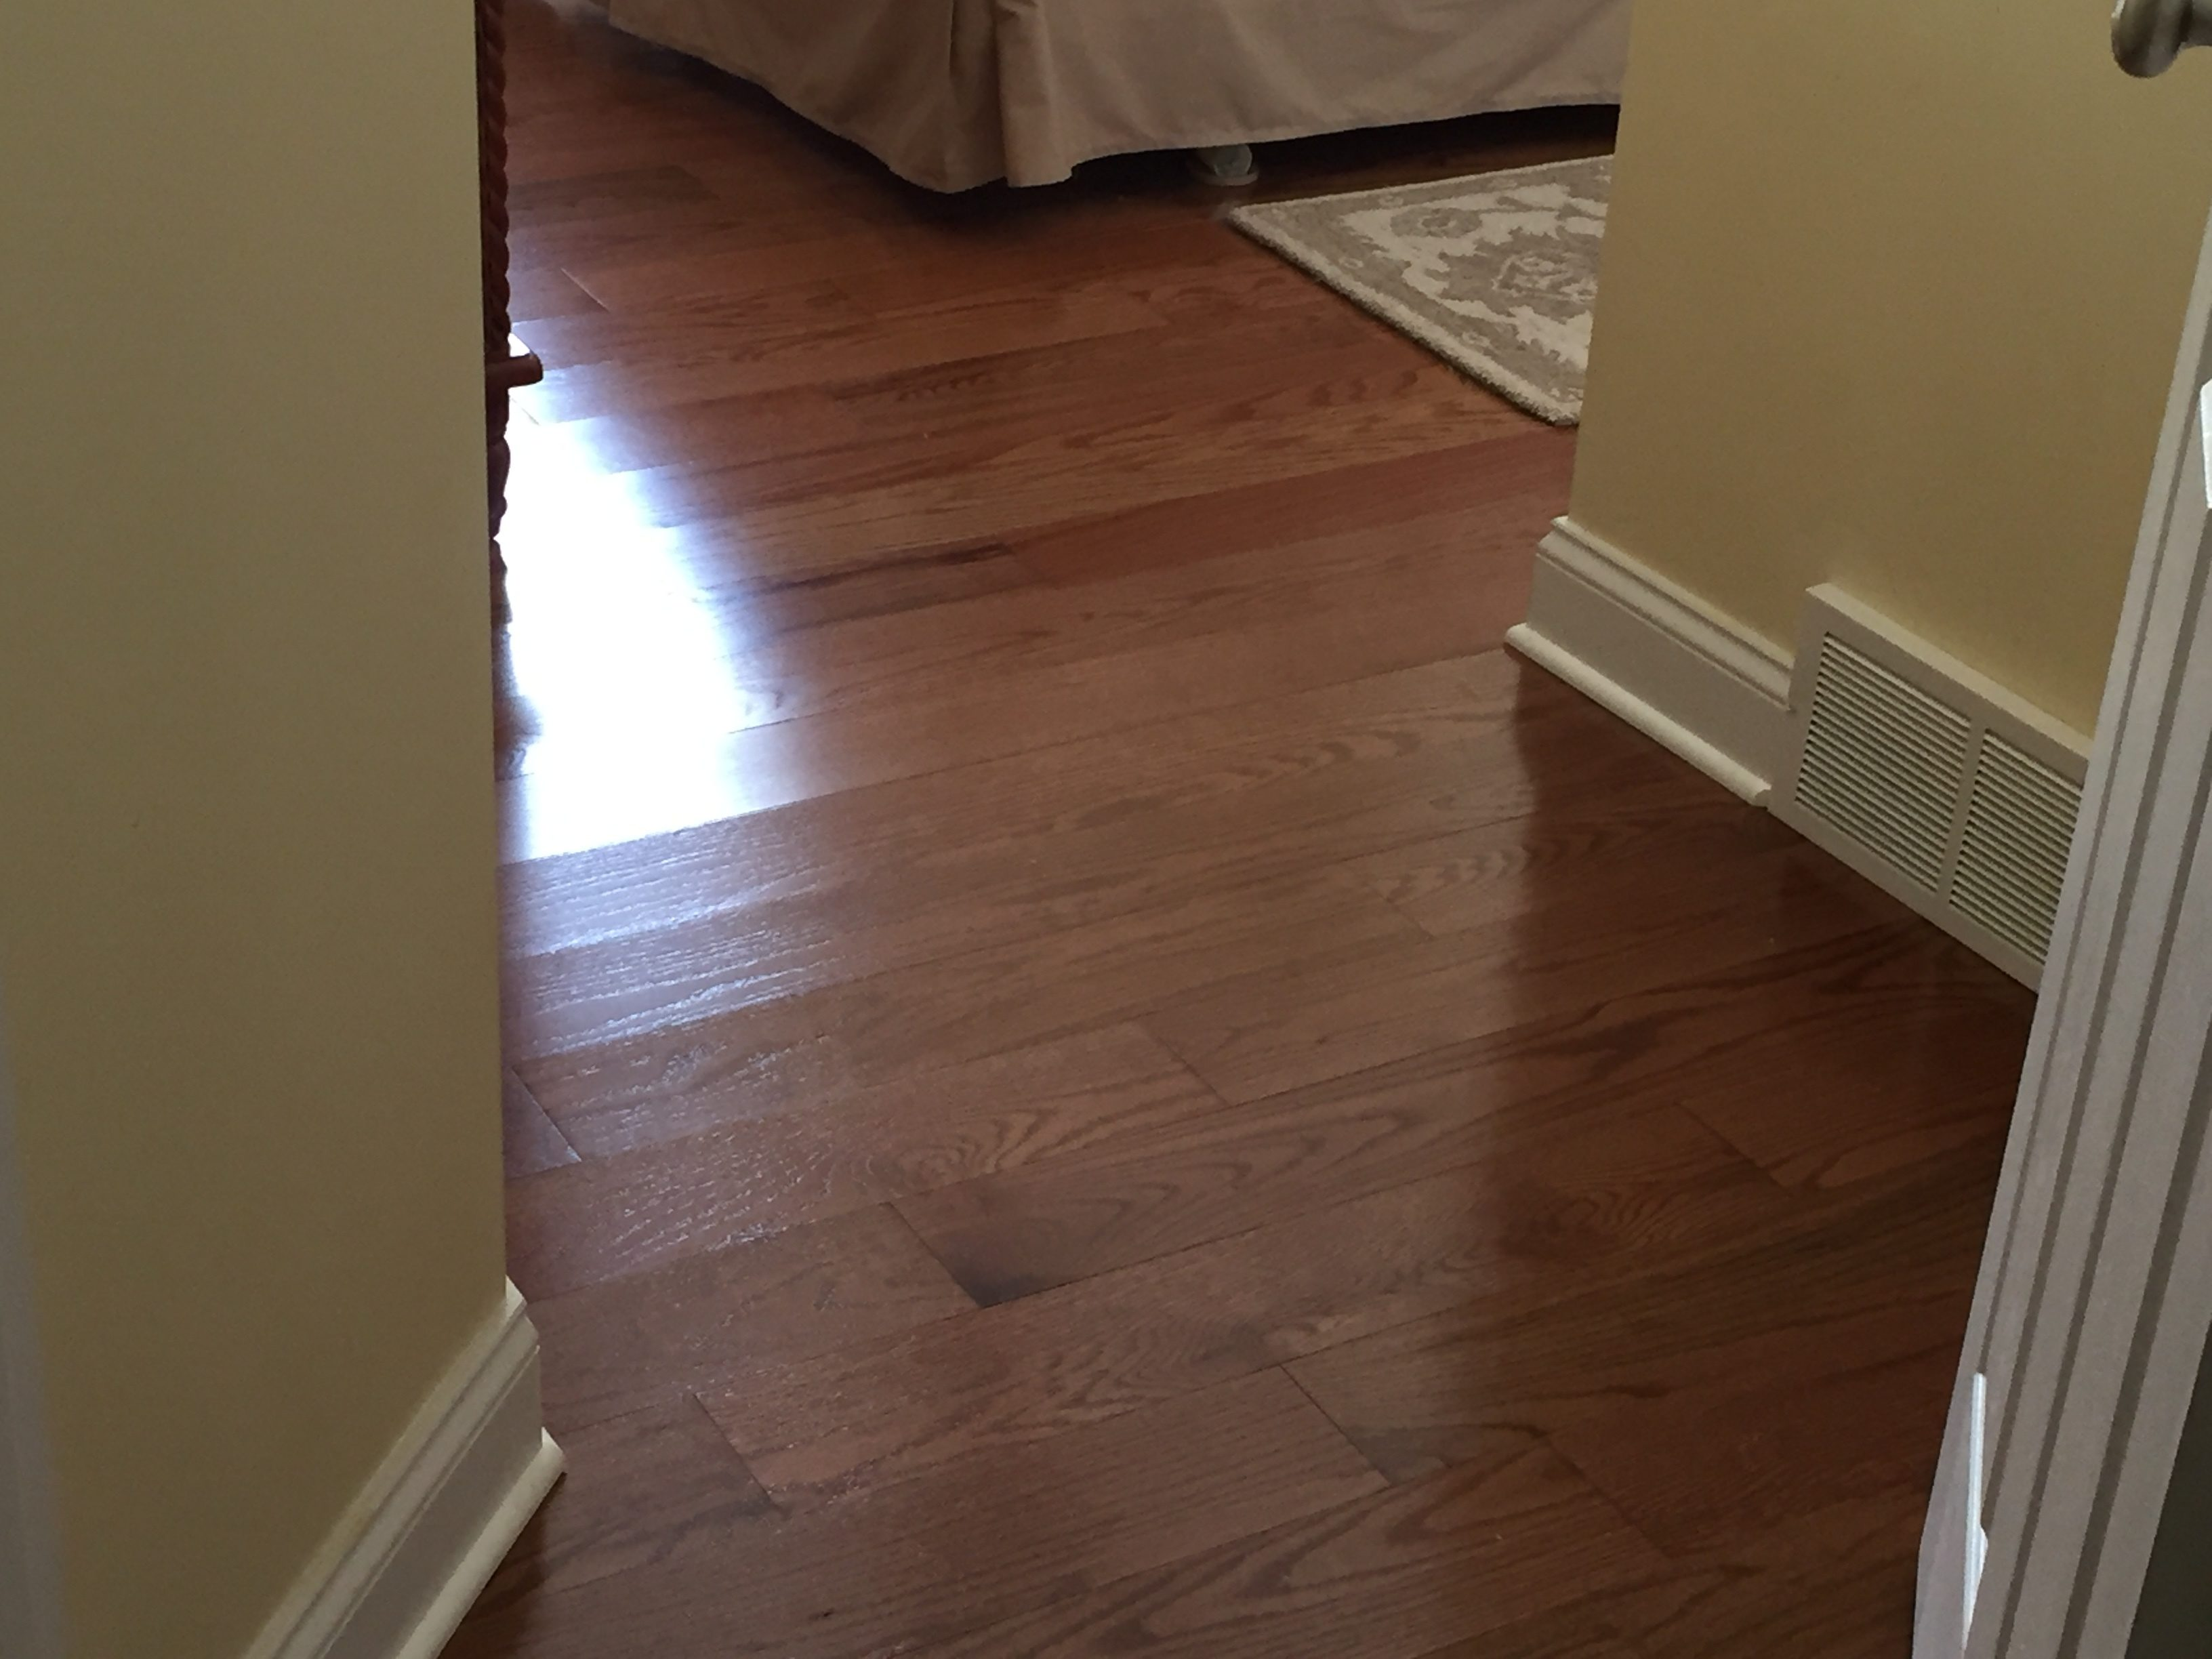 Lowes flooring cleats carpet vidalondon for Hardwood floors dog nails